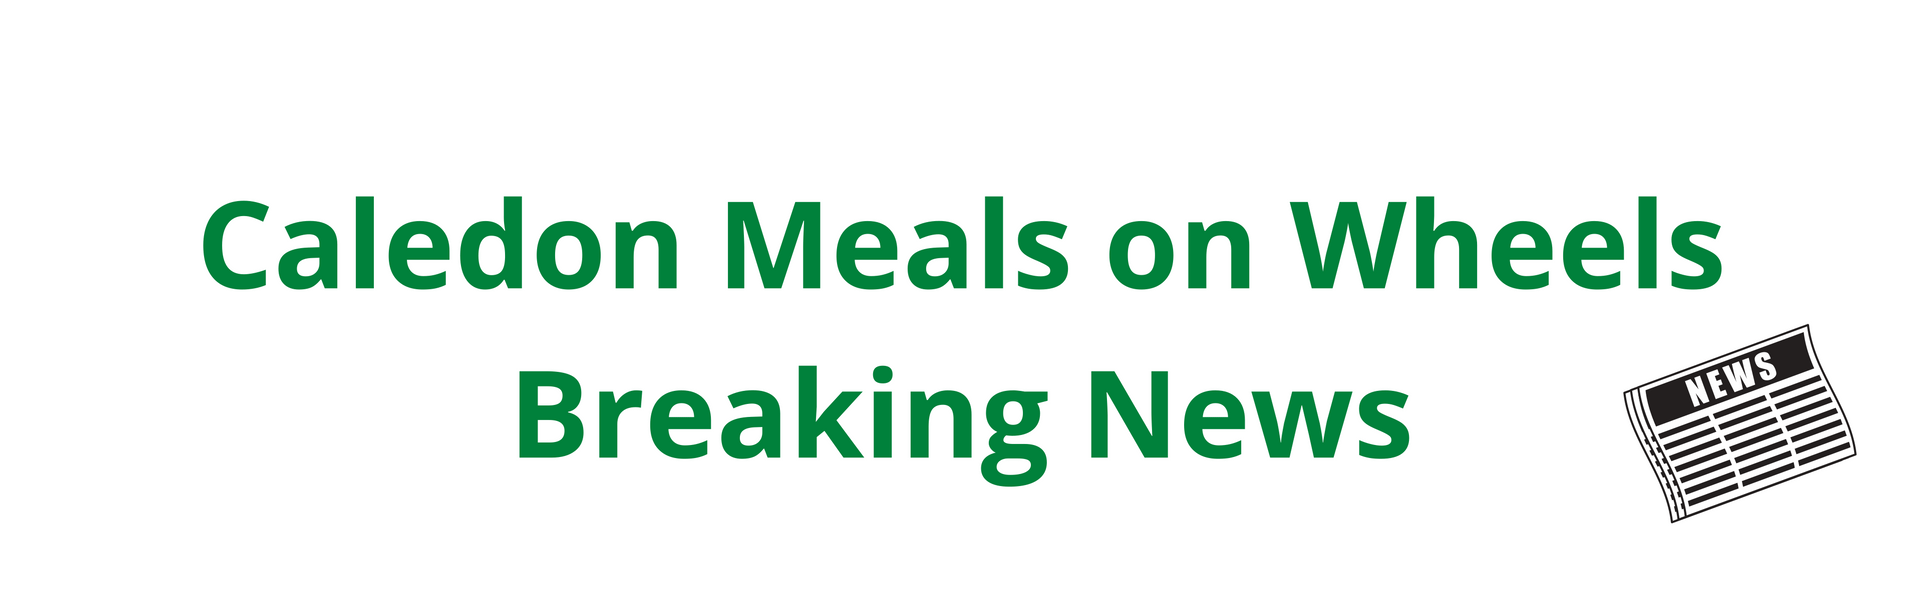 Caledon-Meals-on-Wheels-News.png